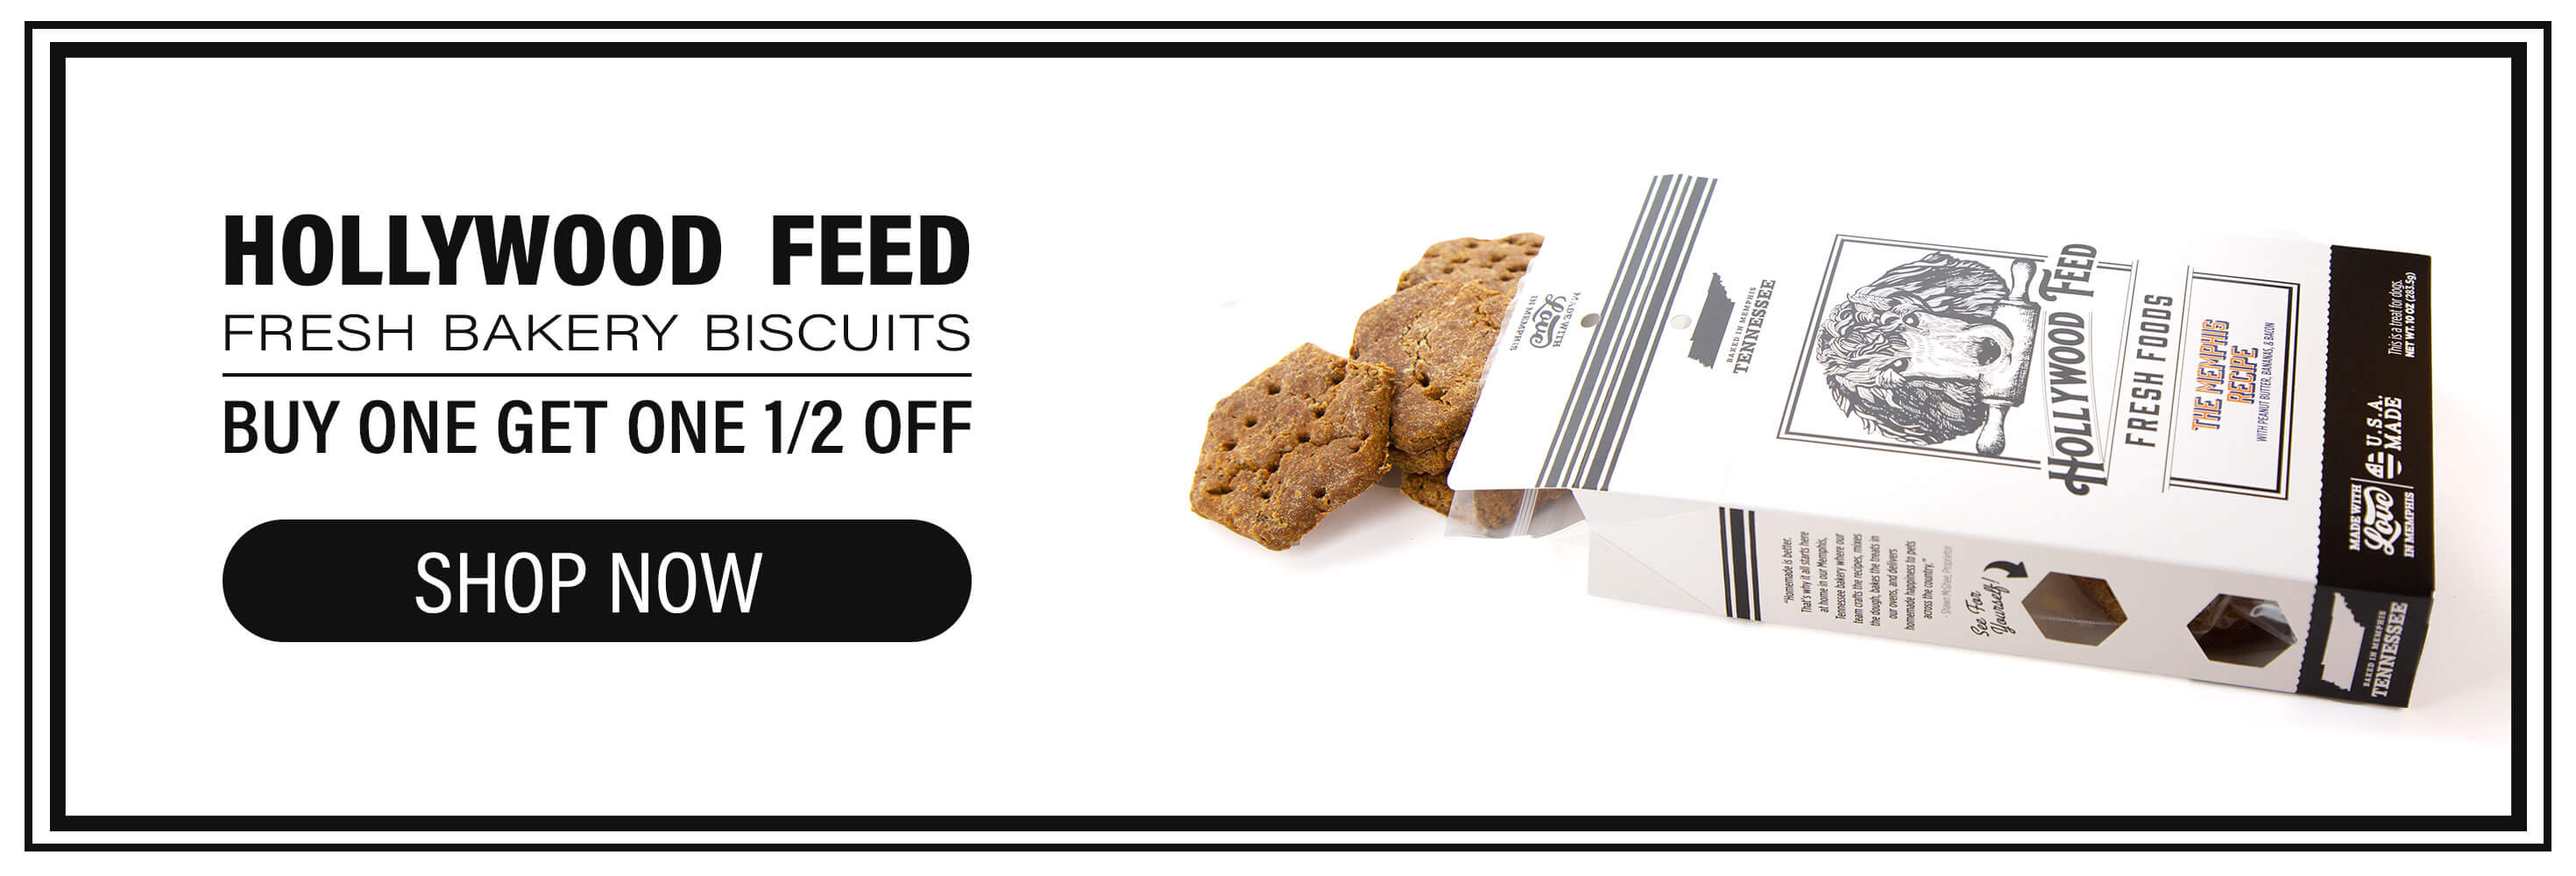 Hollywood Feed Fresh Bakery Biscuits BOGO 1/2 Off